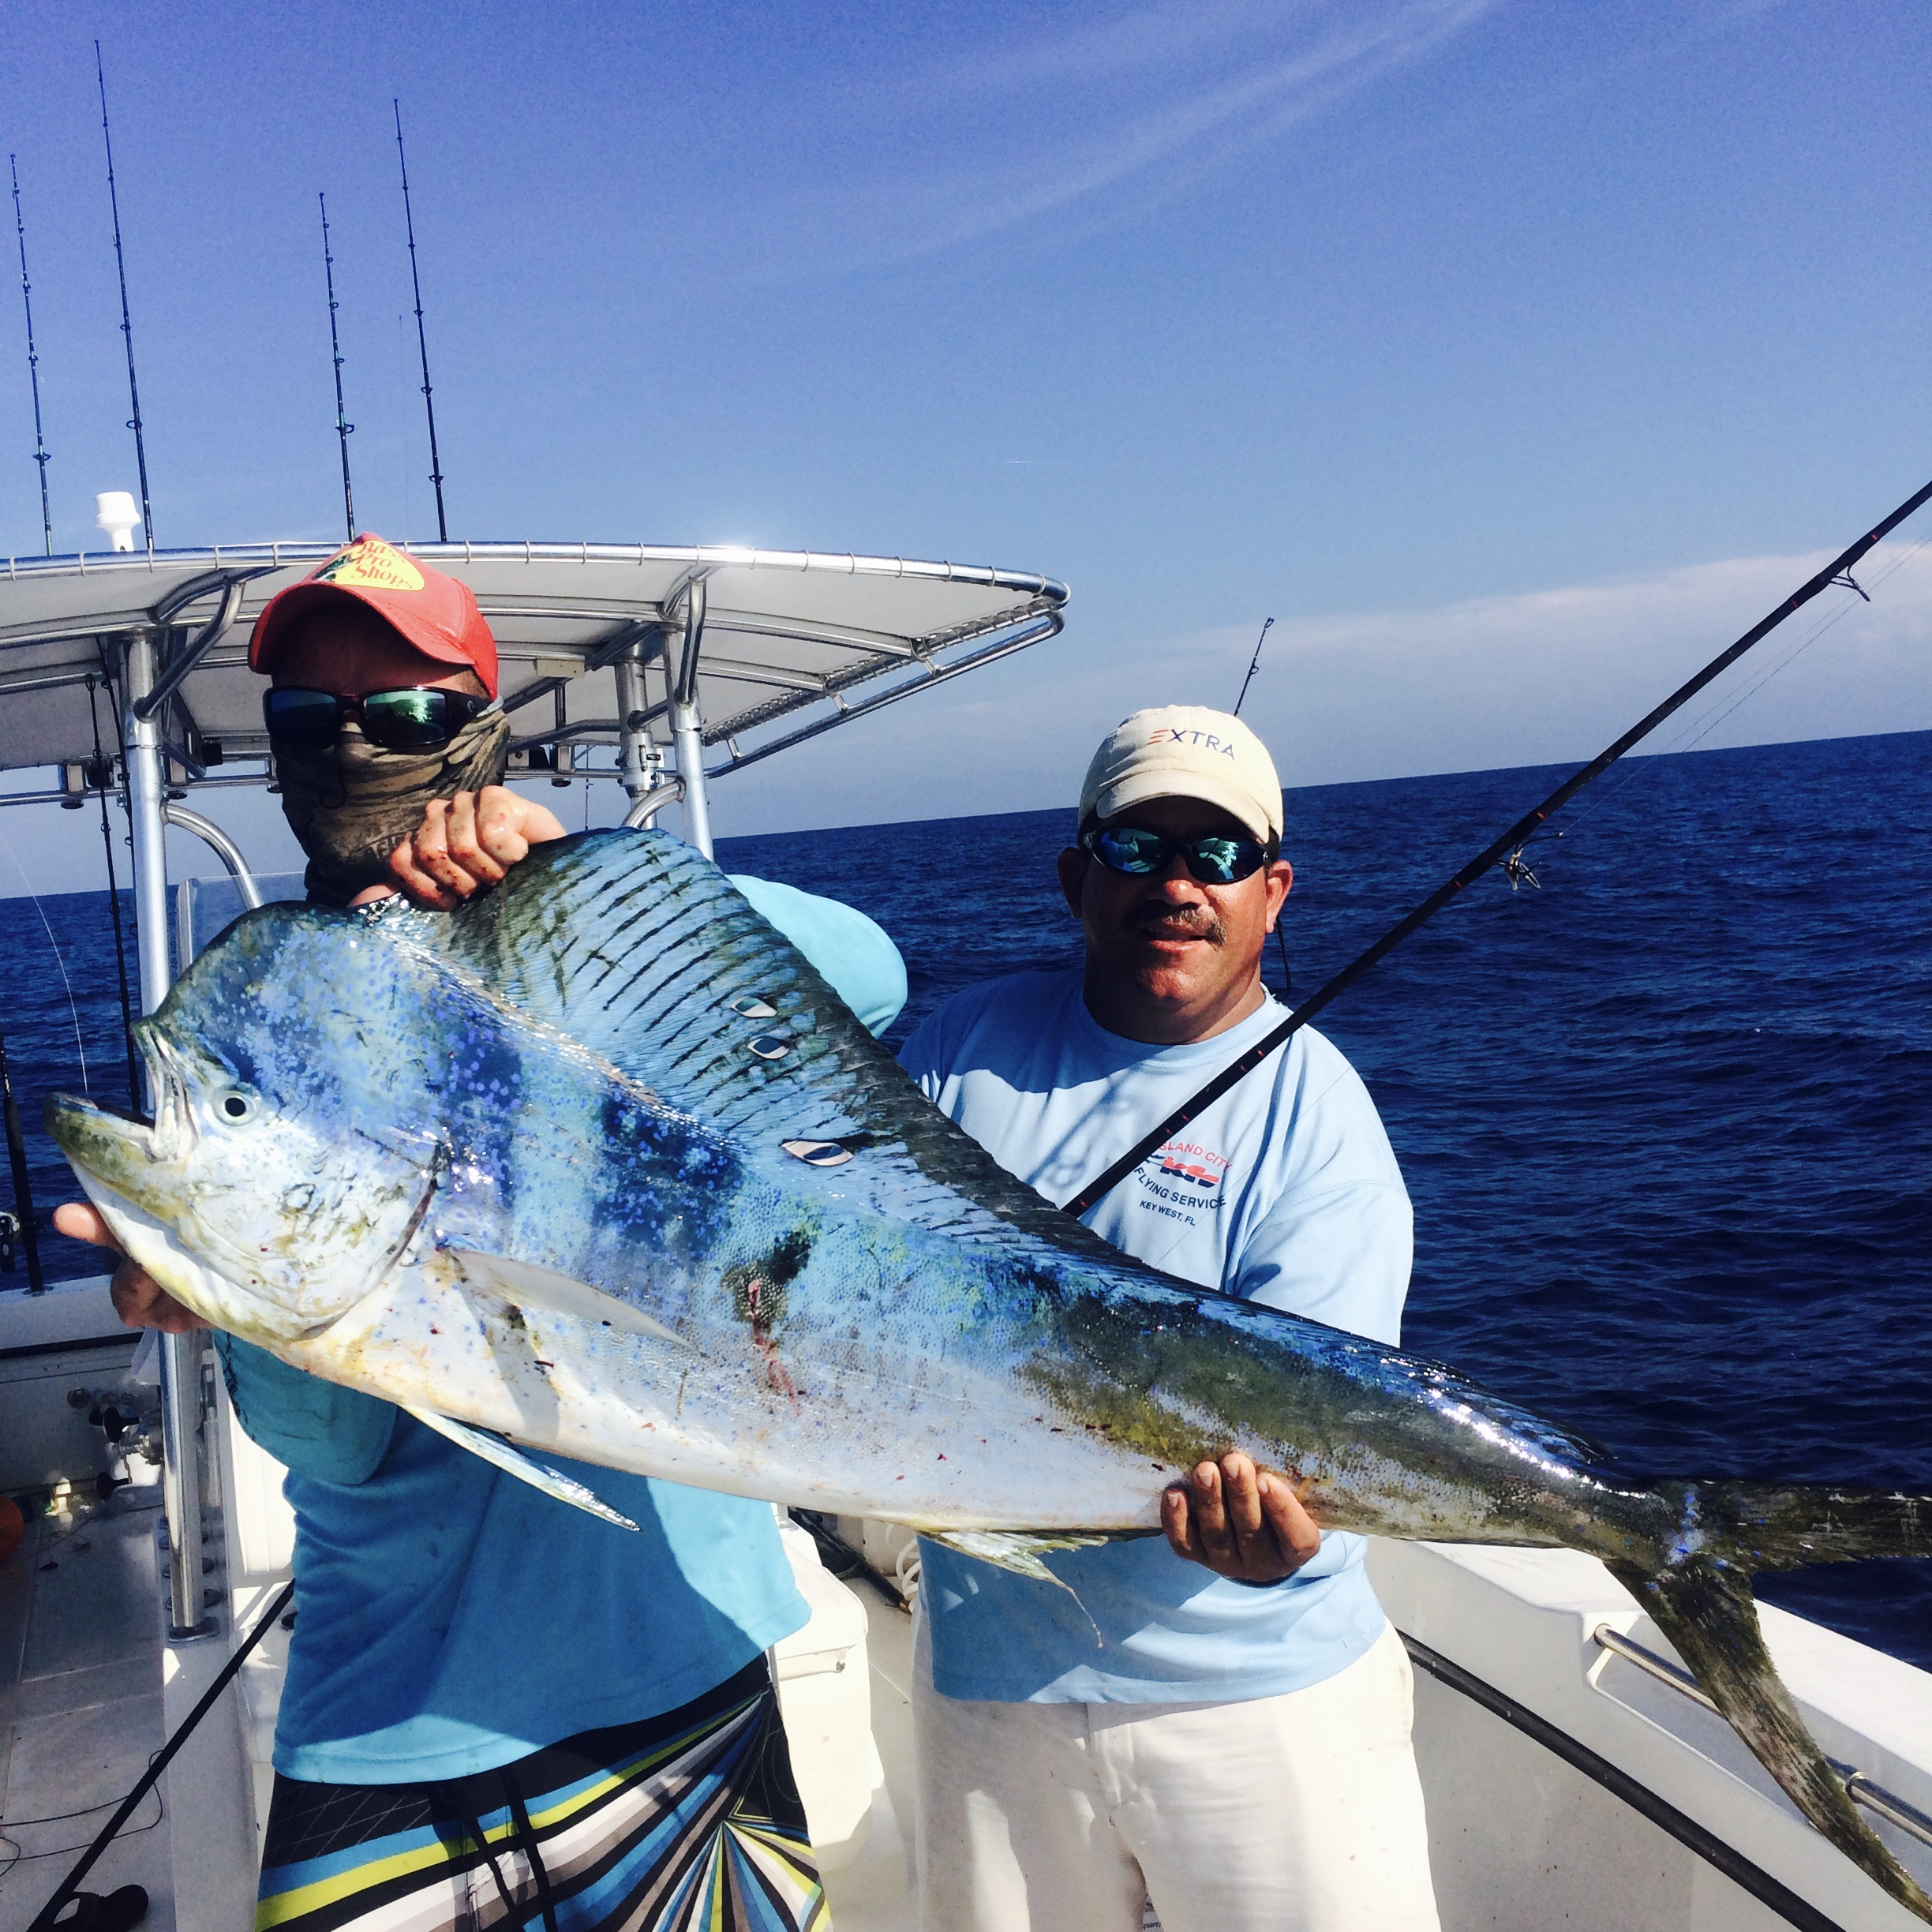 Key west offshore fishing trips far out fishing charters for Key west fishing charters